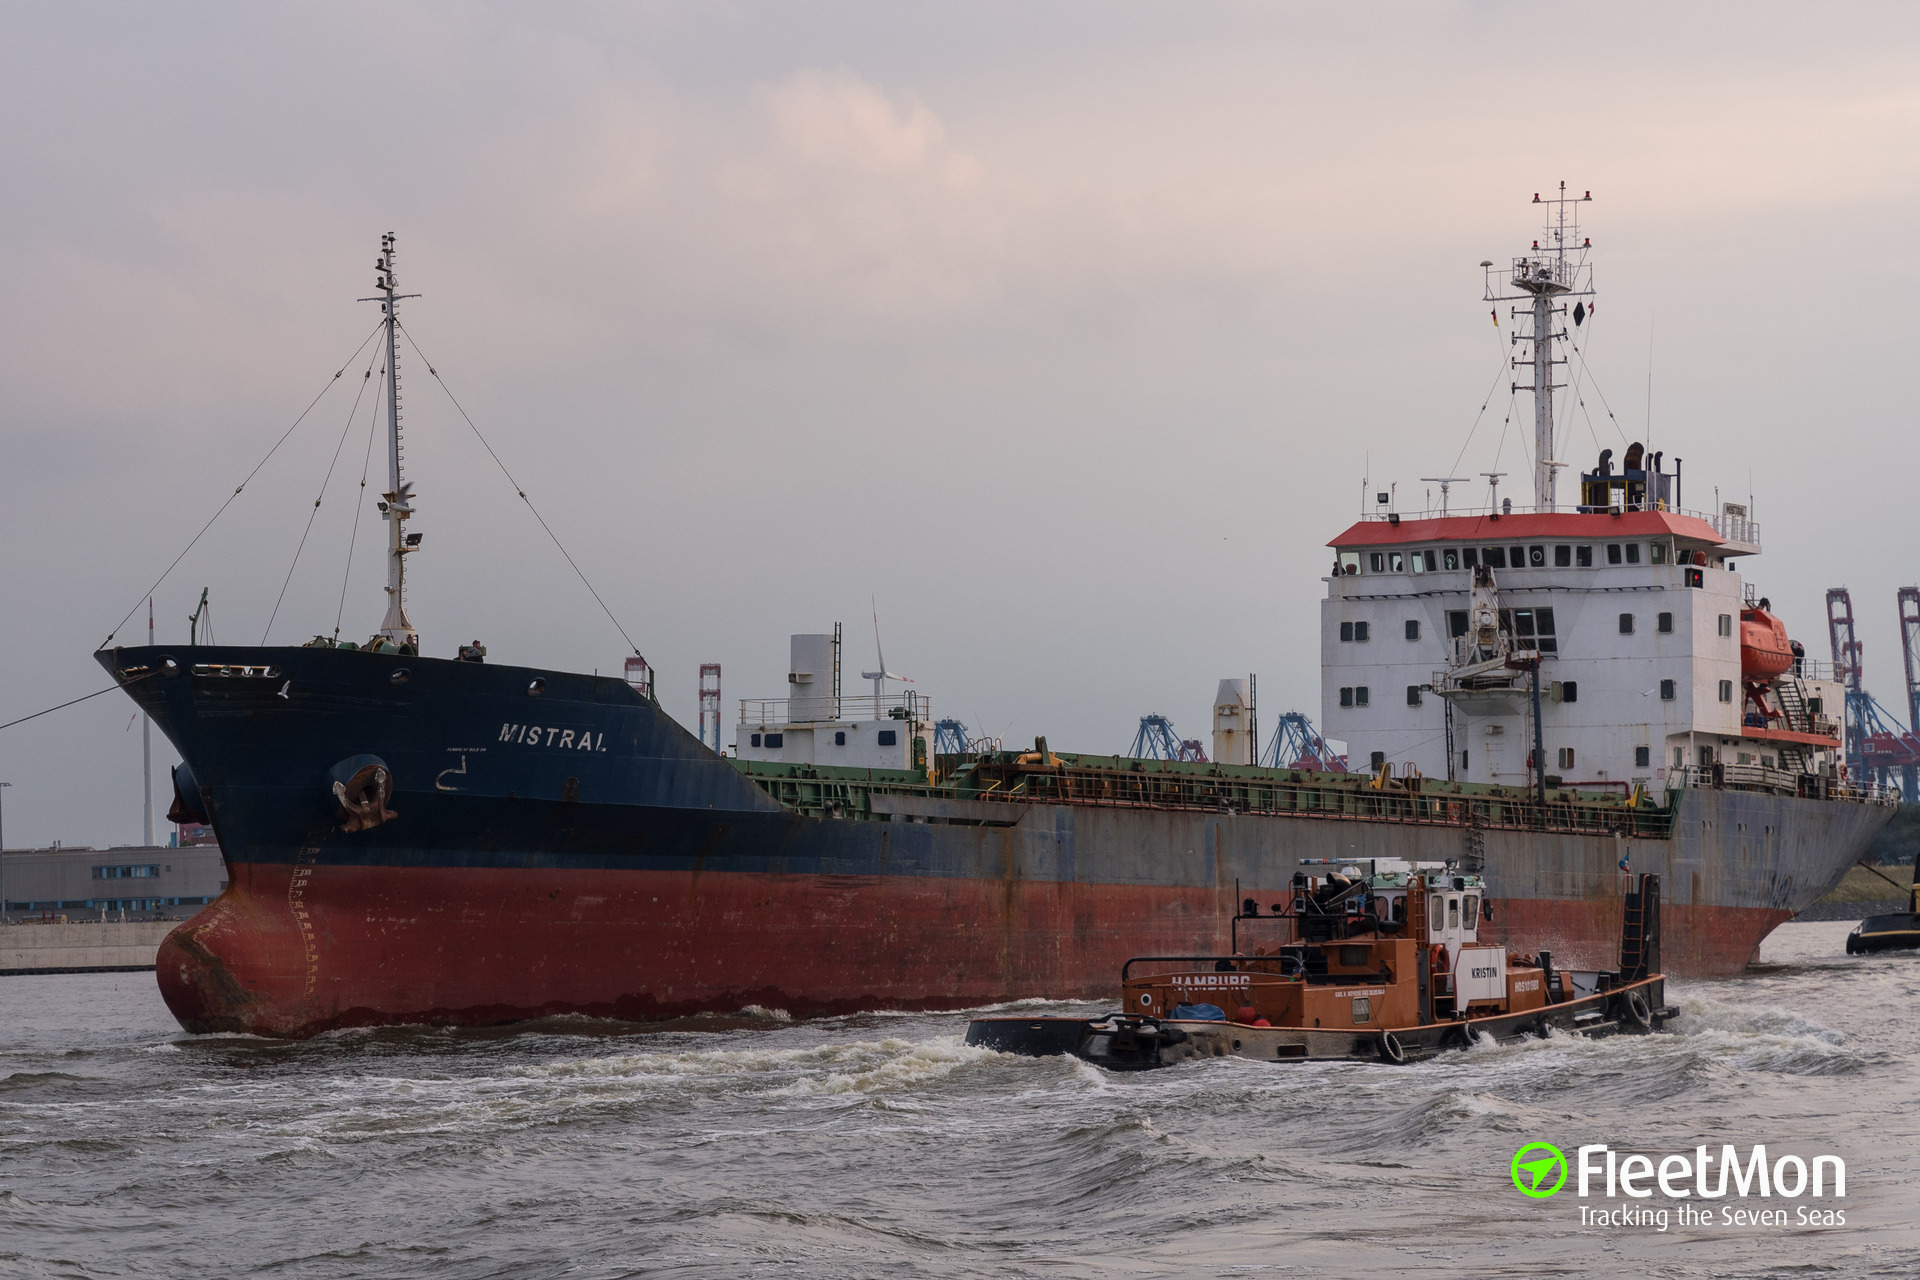 Disabled cargo ship MISTRAL under tow, North Sea